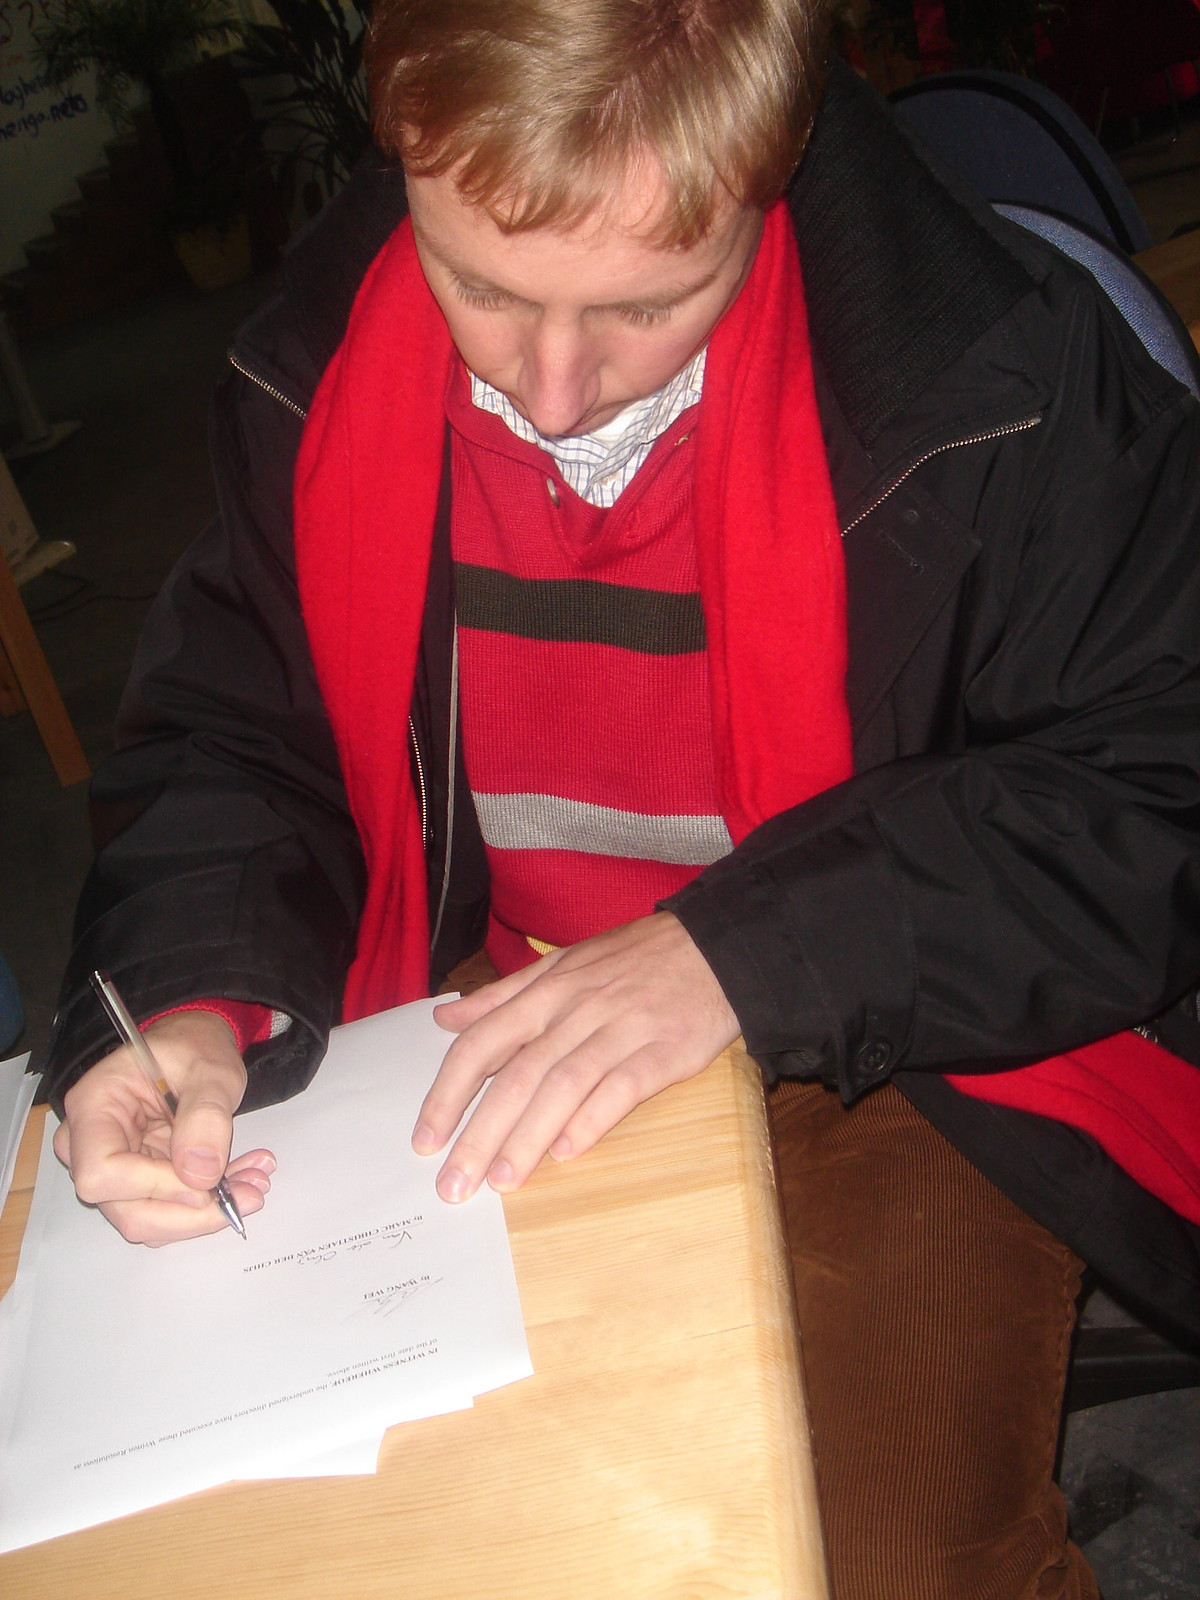 Marc signing the contract